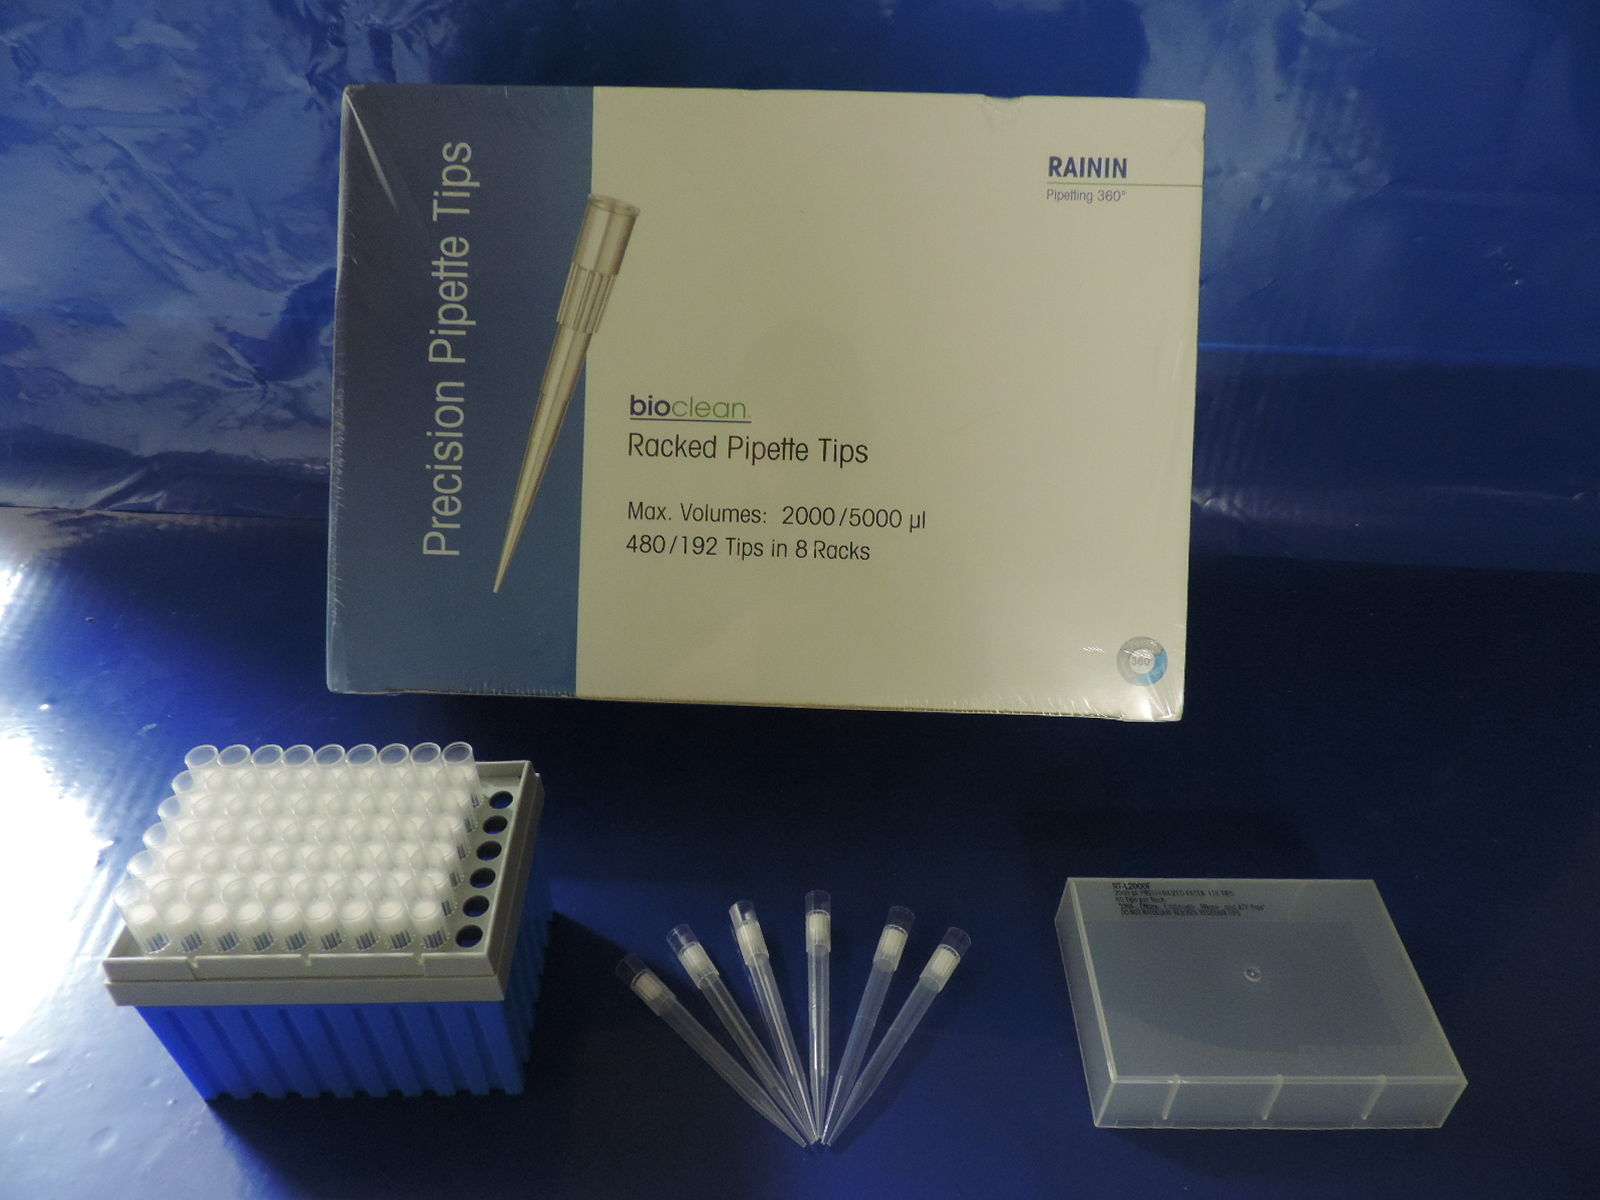 Bioclean Presterilized Filter LTS Pipette Tips